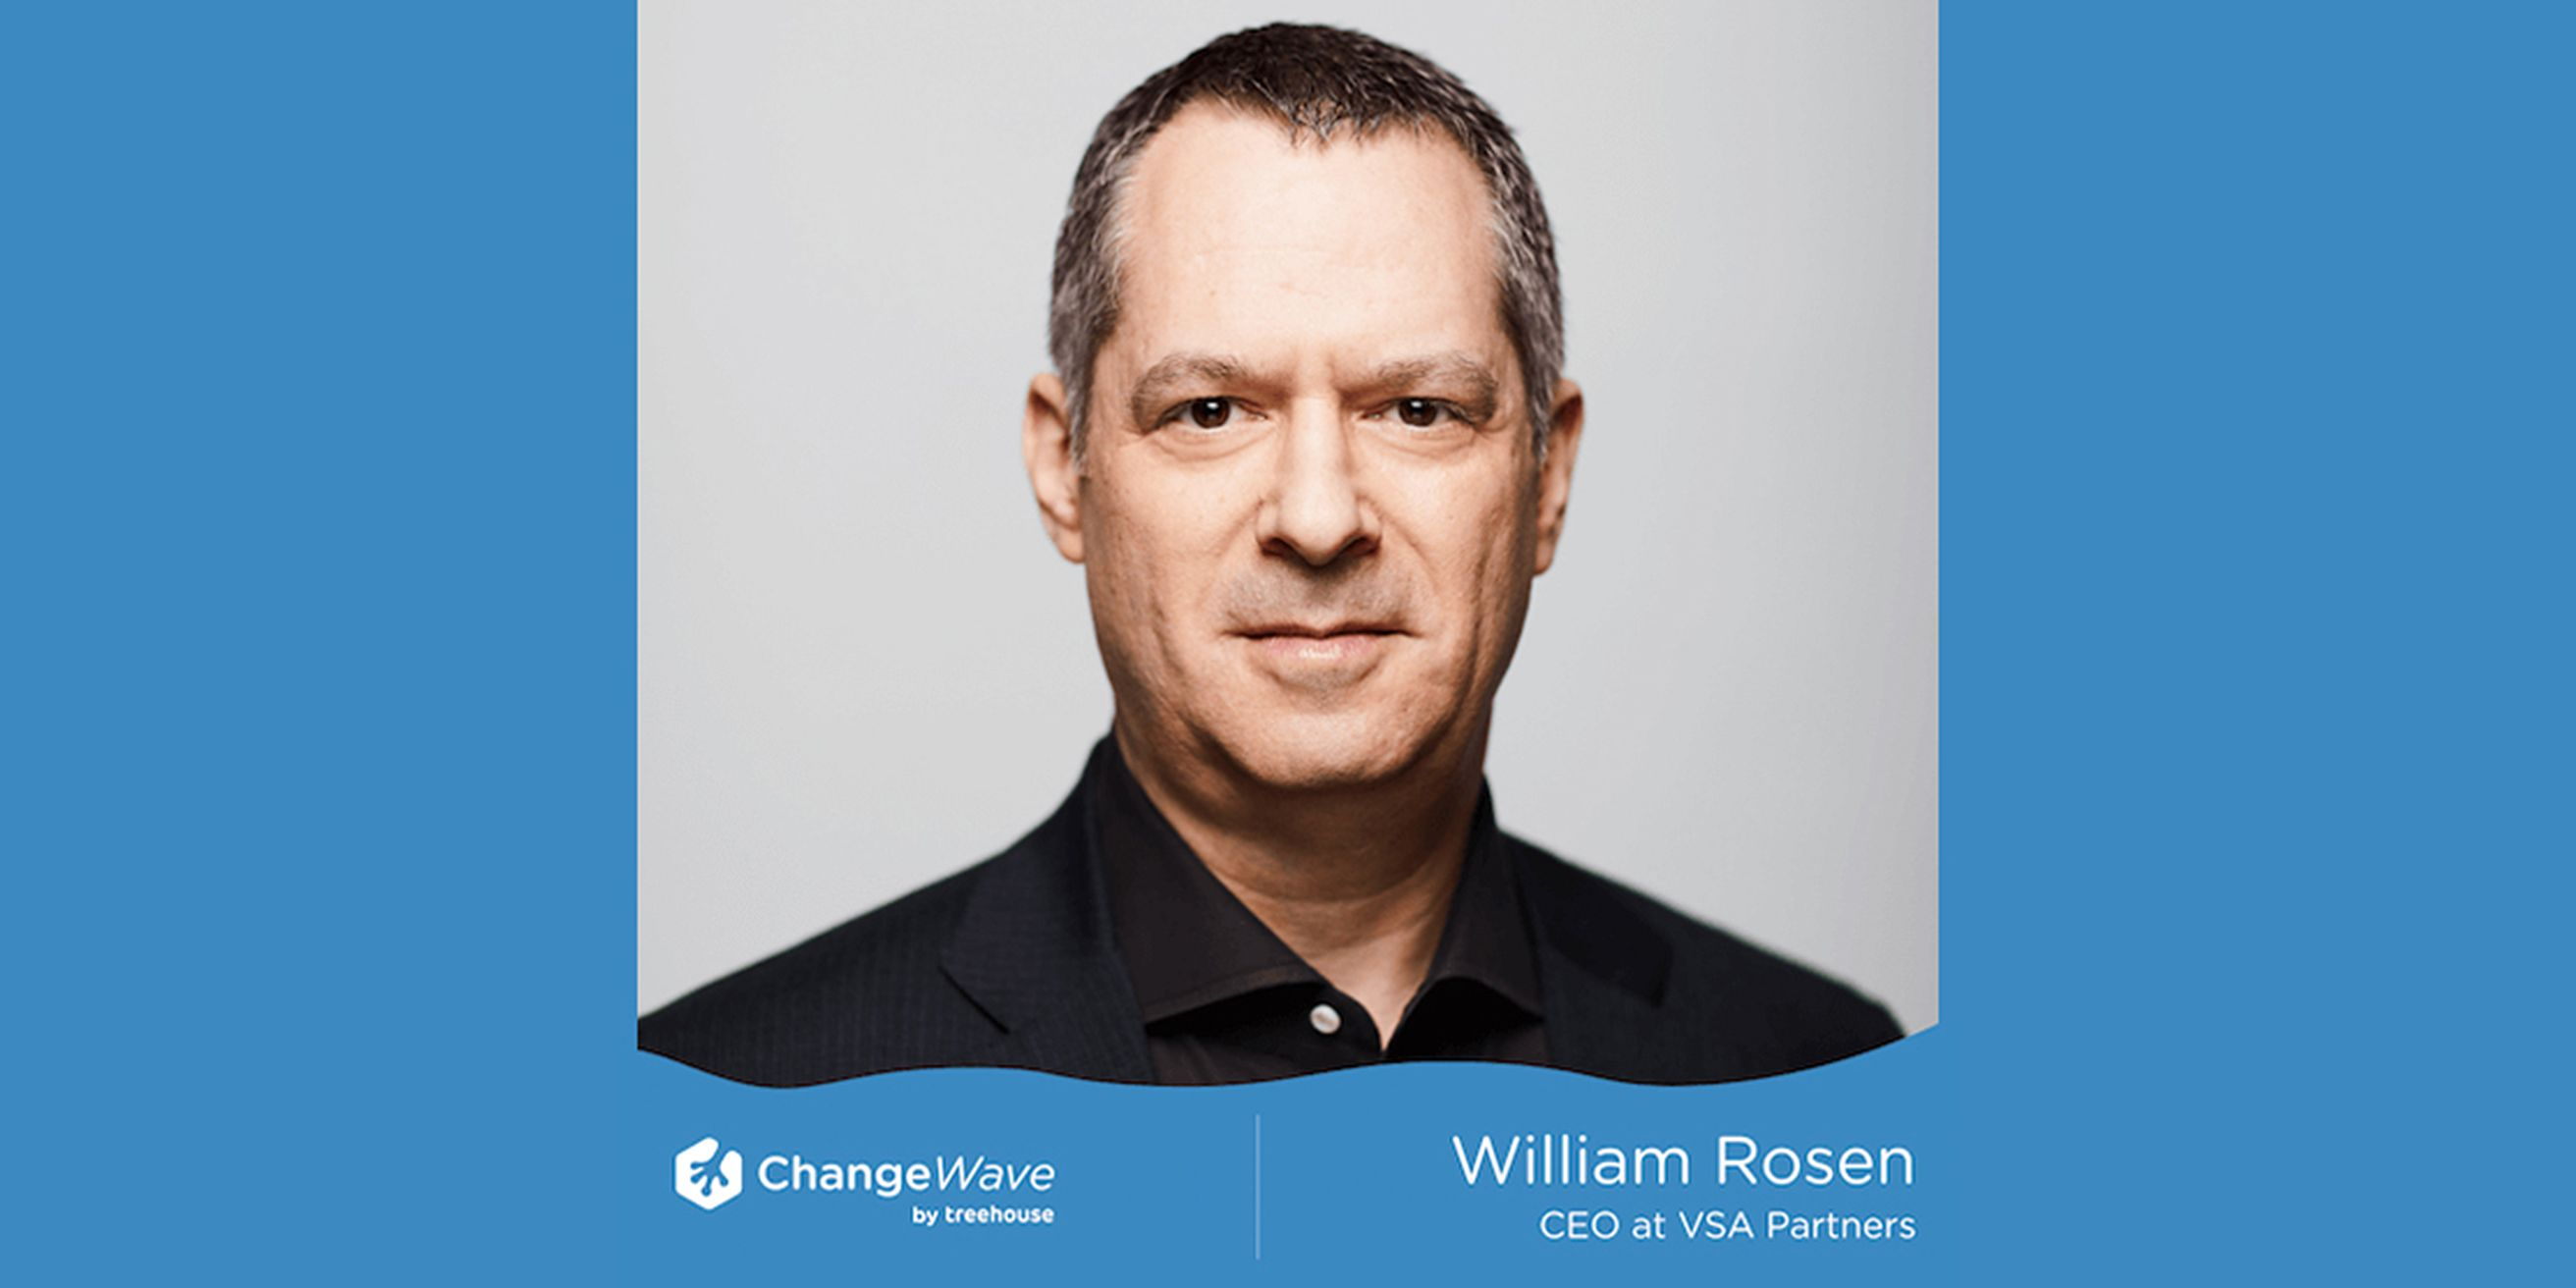 Bill Rosen recognized by ChangeWave